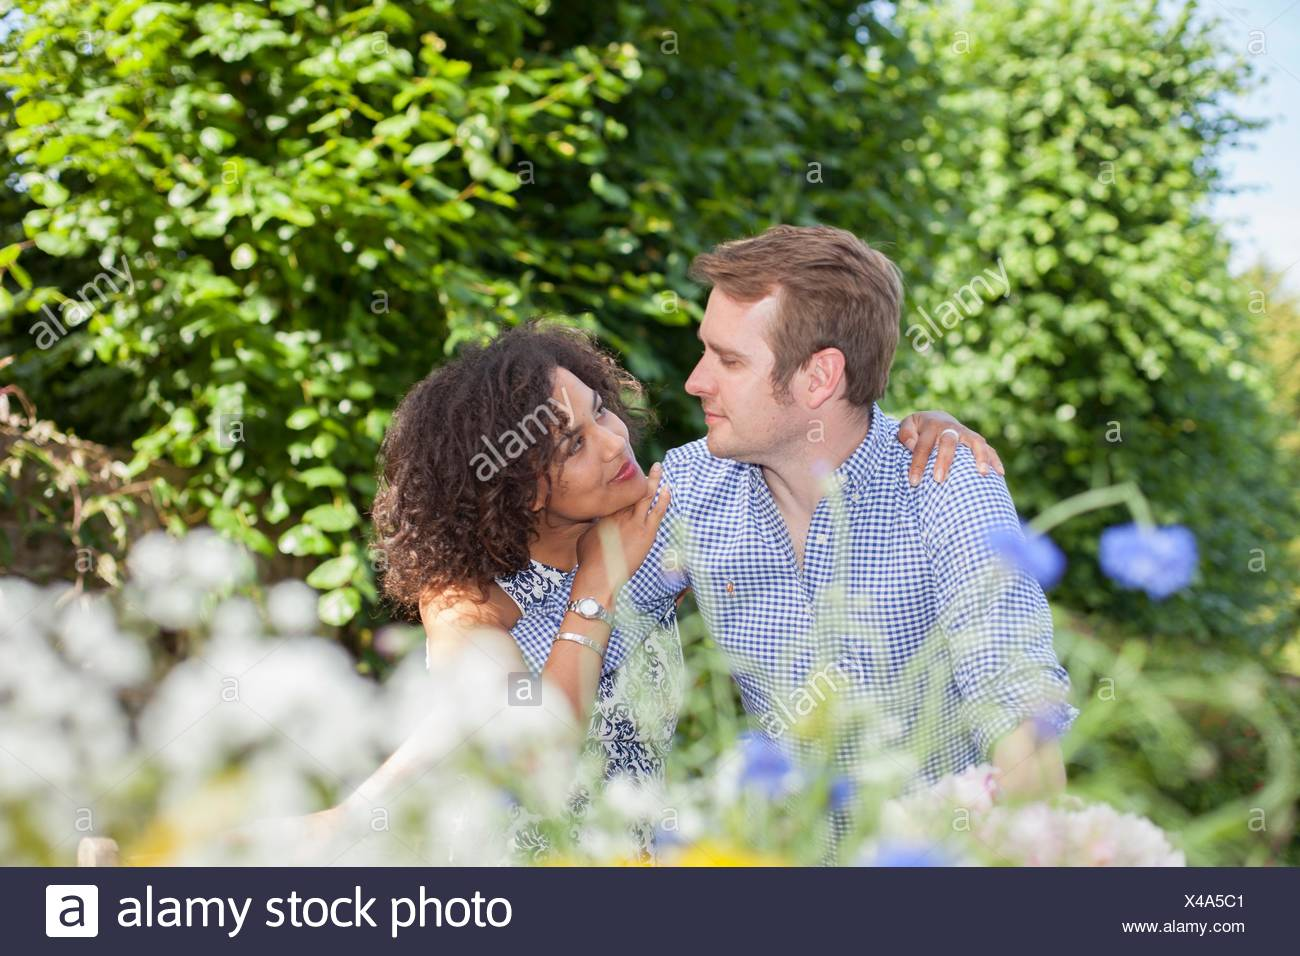 Mid adult couple, embracing, sitting face to face, outdoors - Stock Image